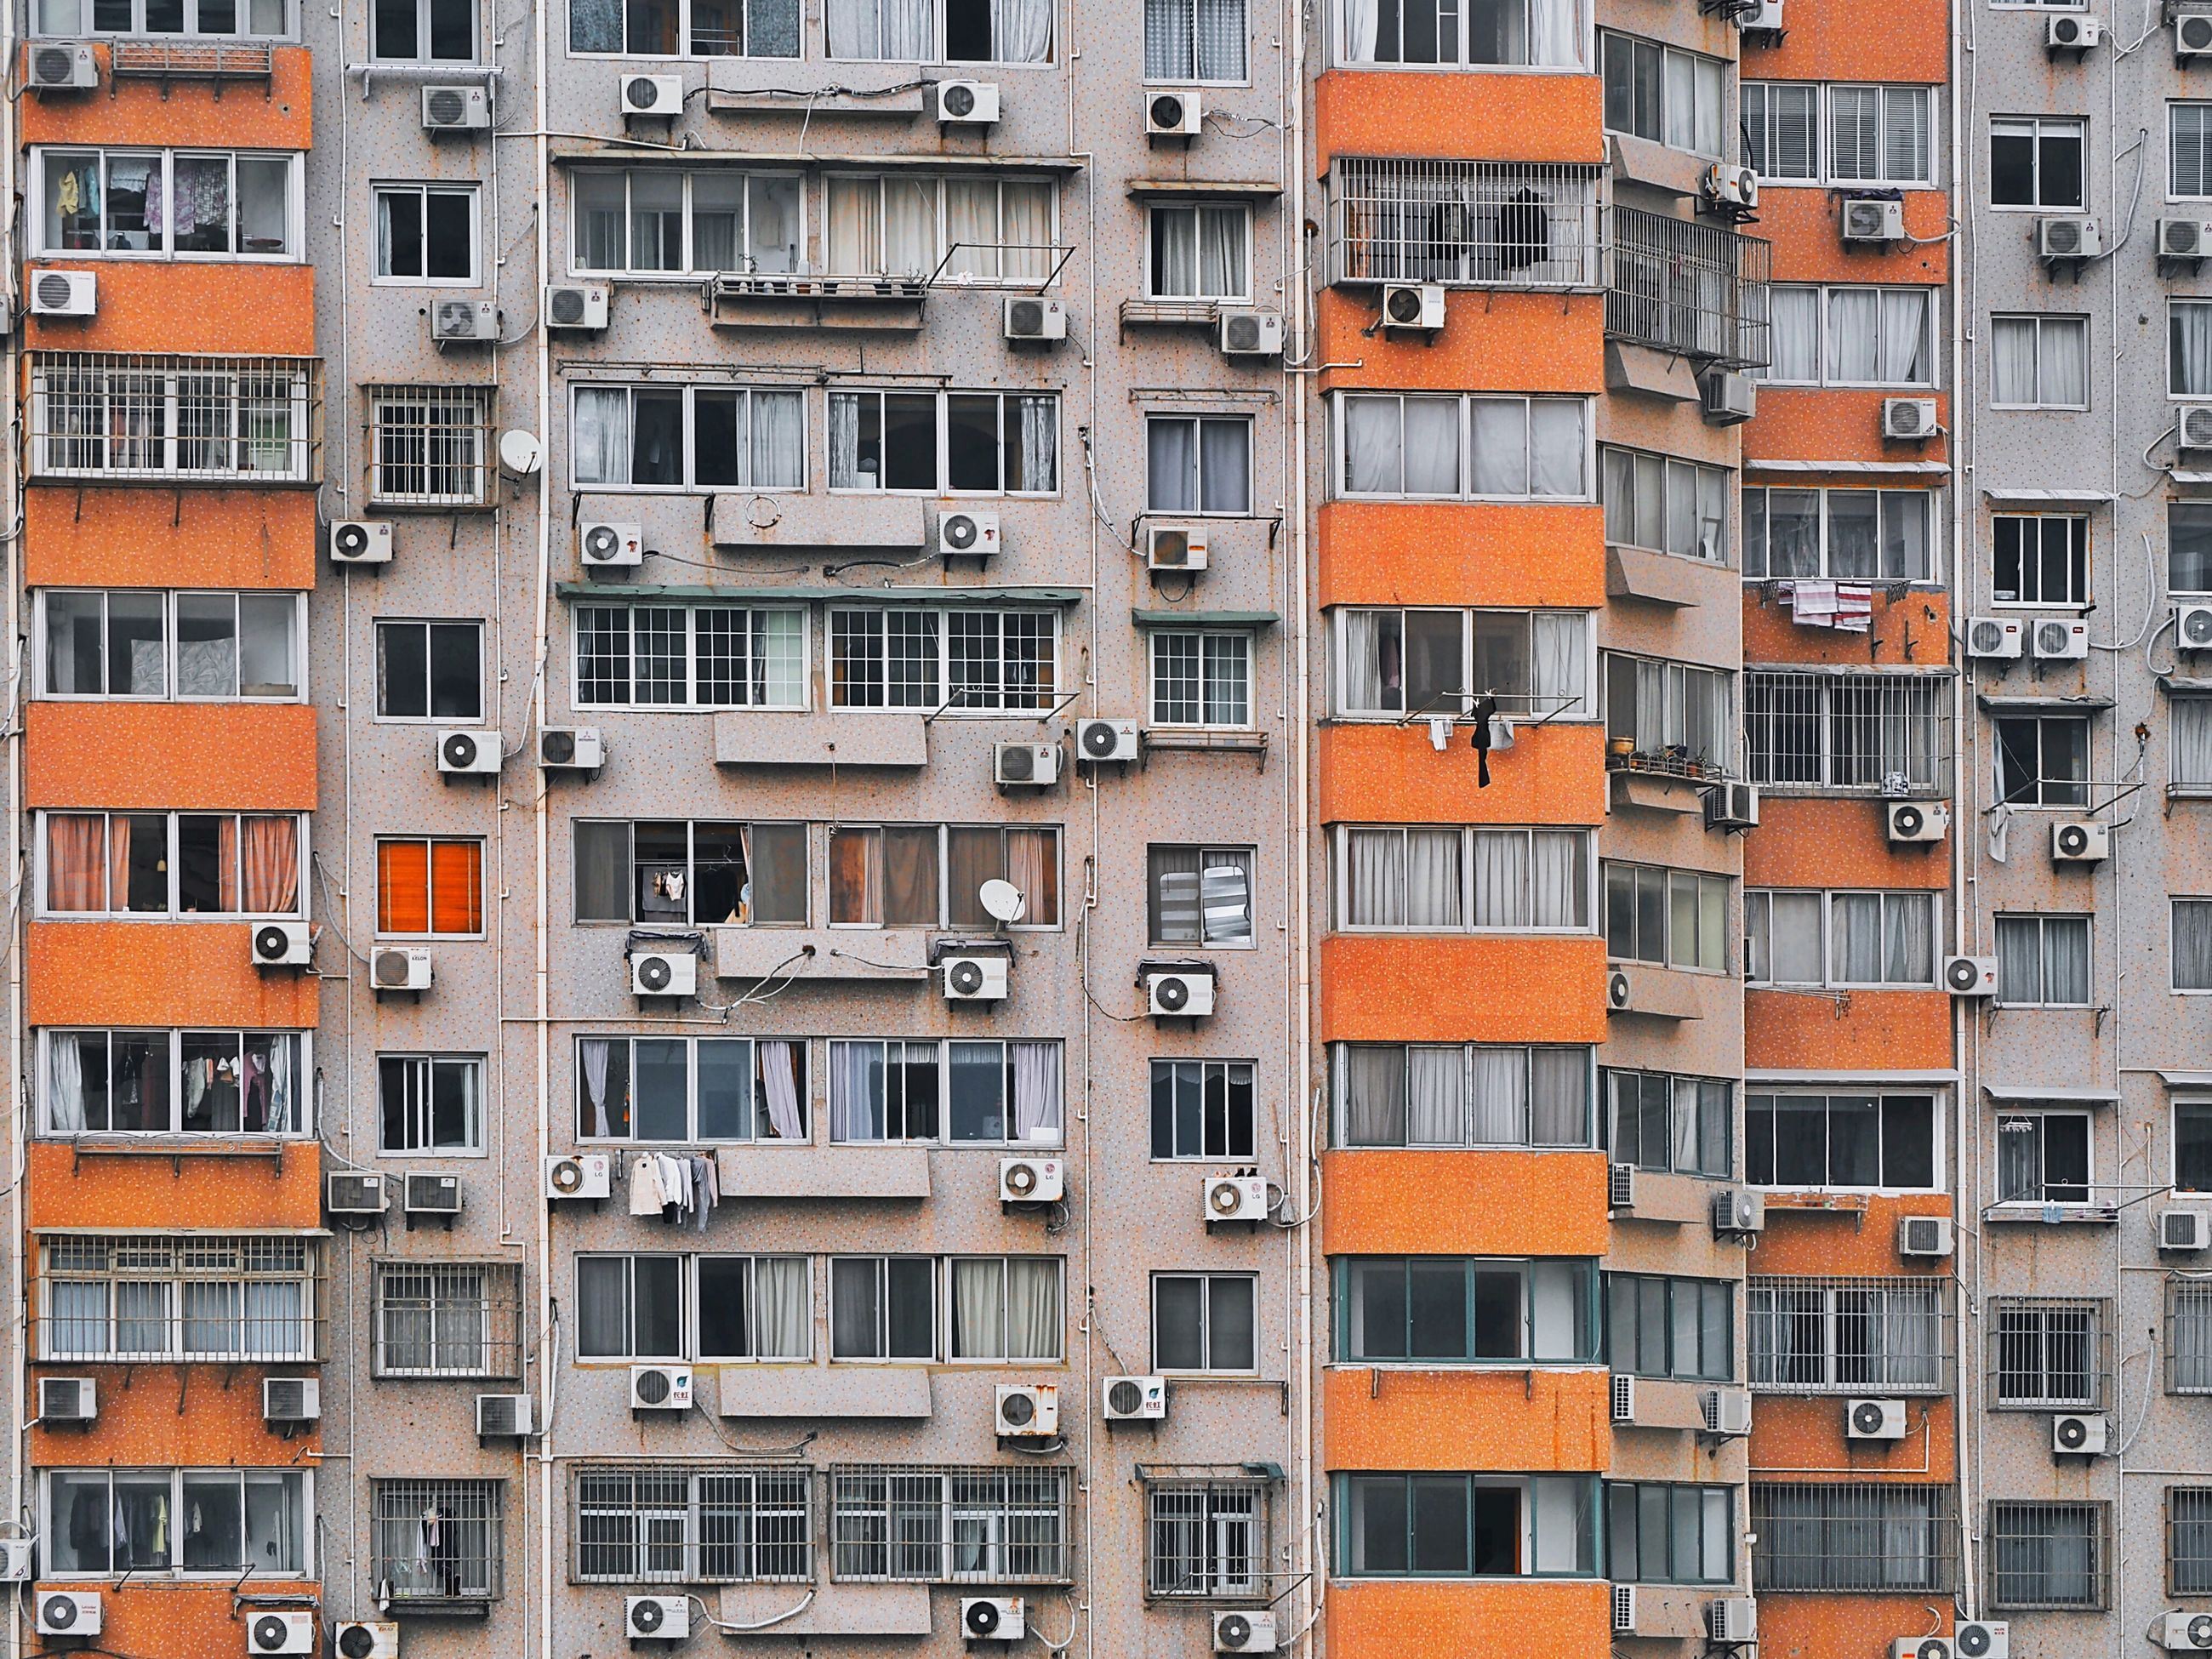 building exterior, architecture, built structure, full frame, window, backgrounds, city, residential building, building, residential structure, repetition, low angle view, apartment, balcony, in a row, modern, day, no people, outdoors, city life